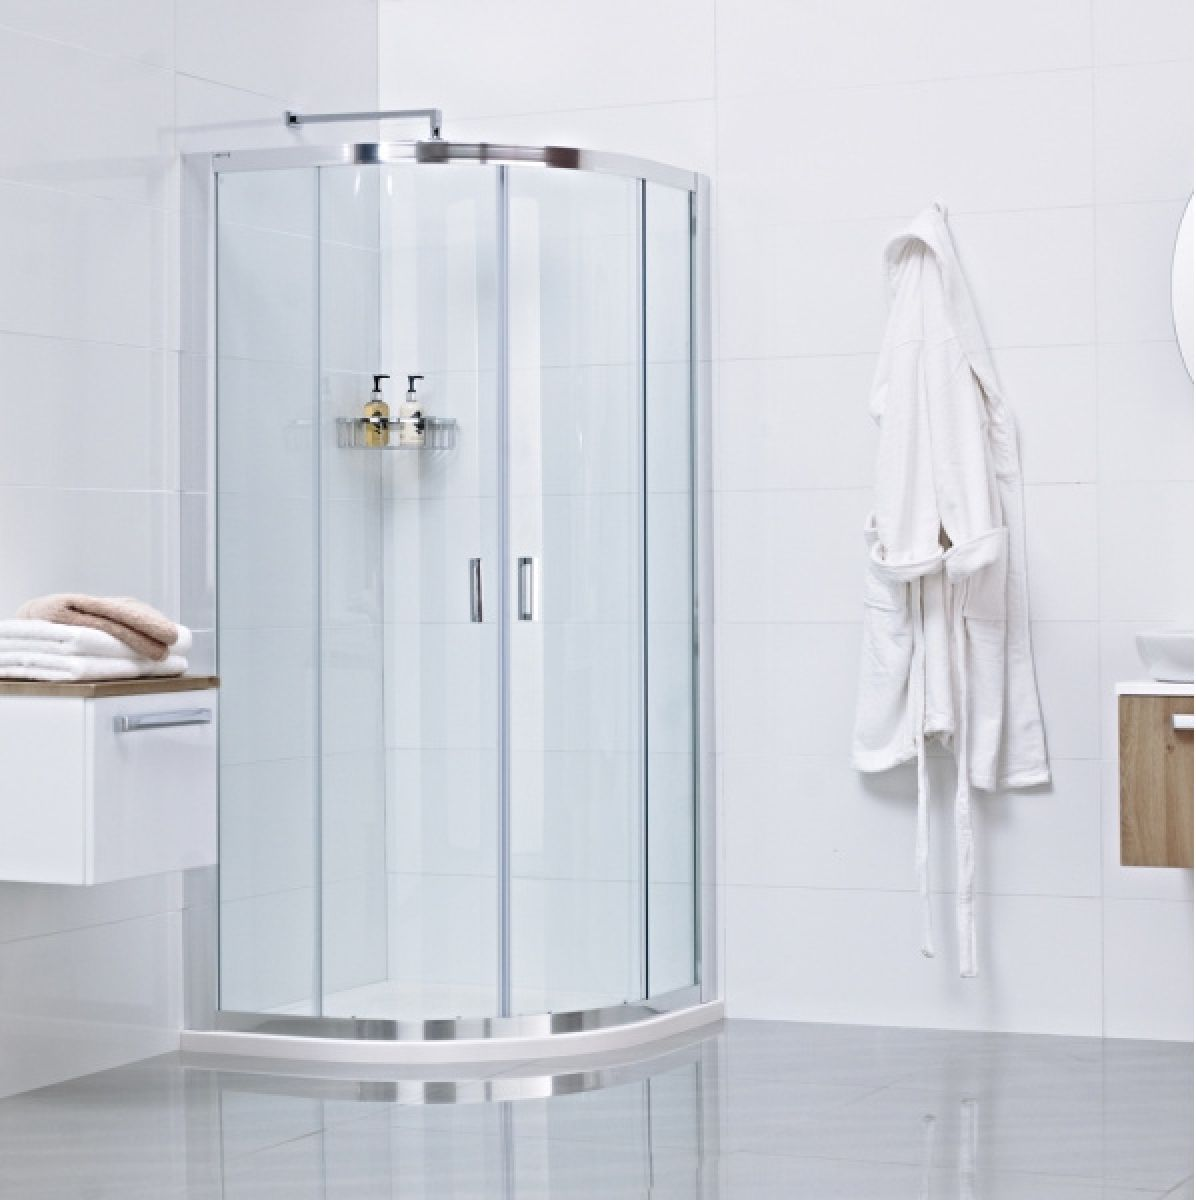 Roman lumin8 two door quadrant shower enclosure uk bathrooms for Door quadrant